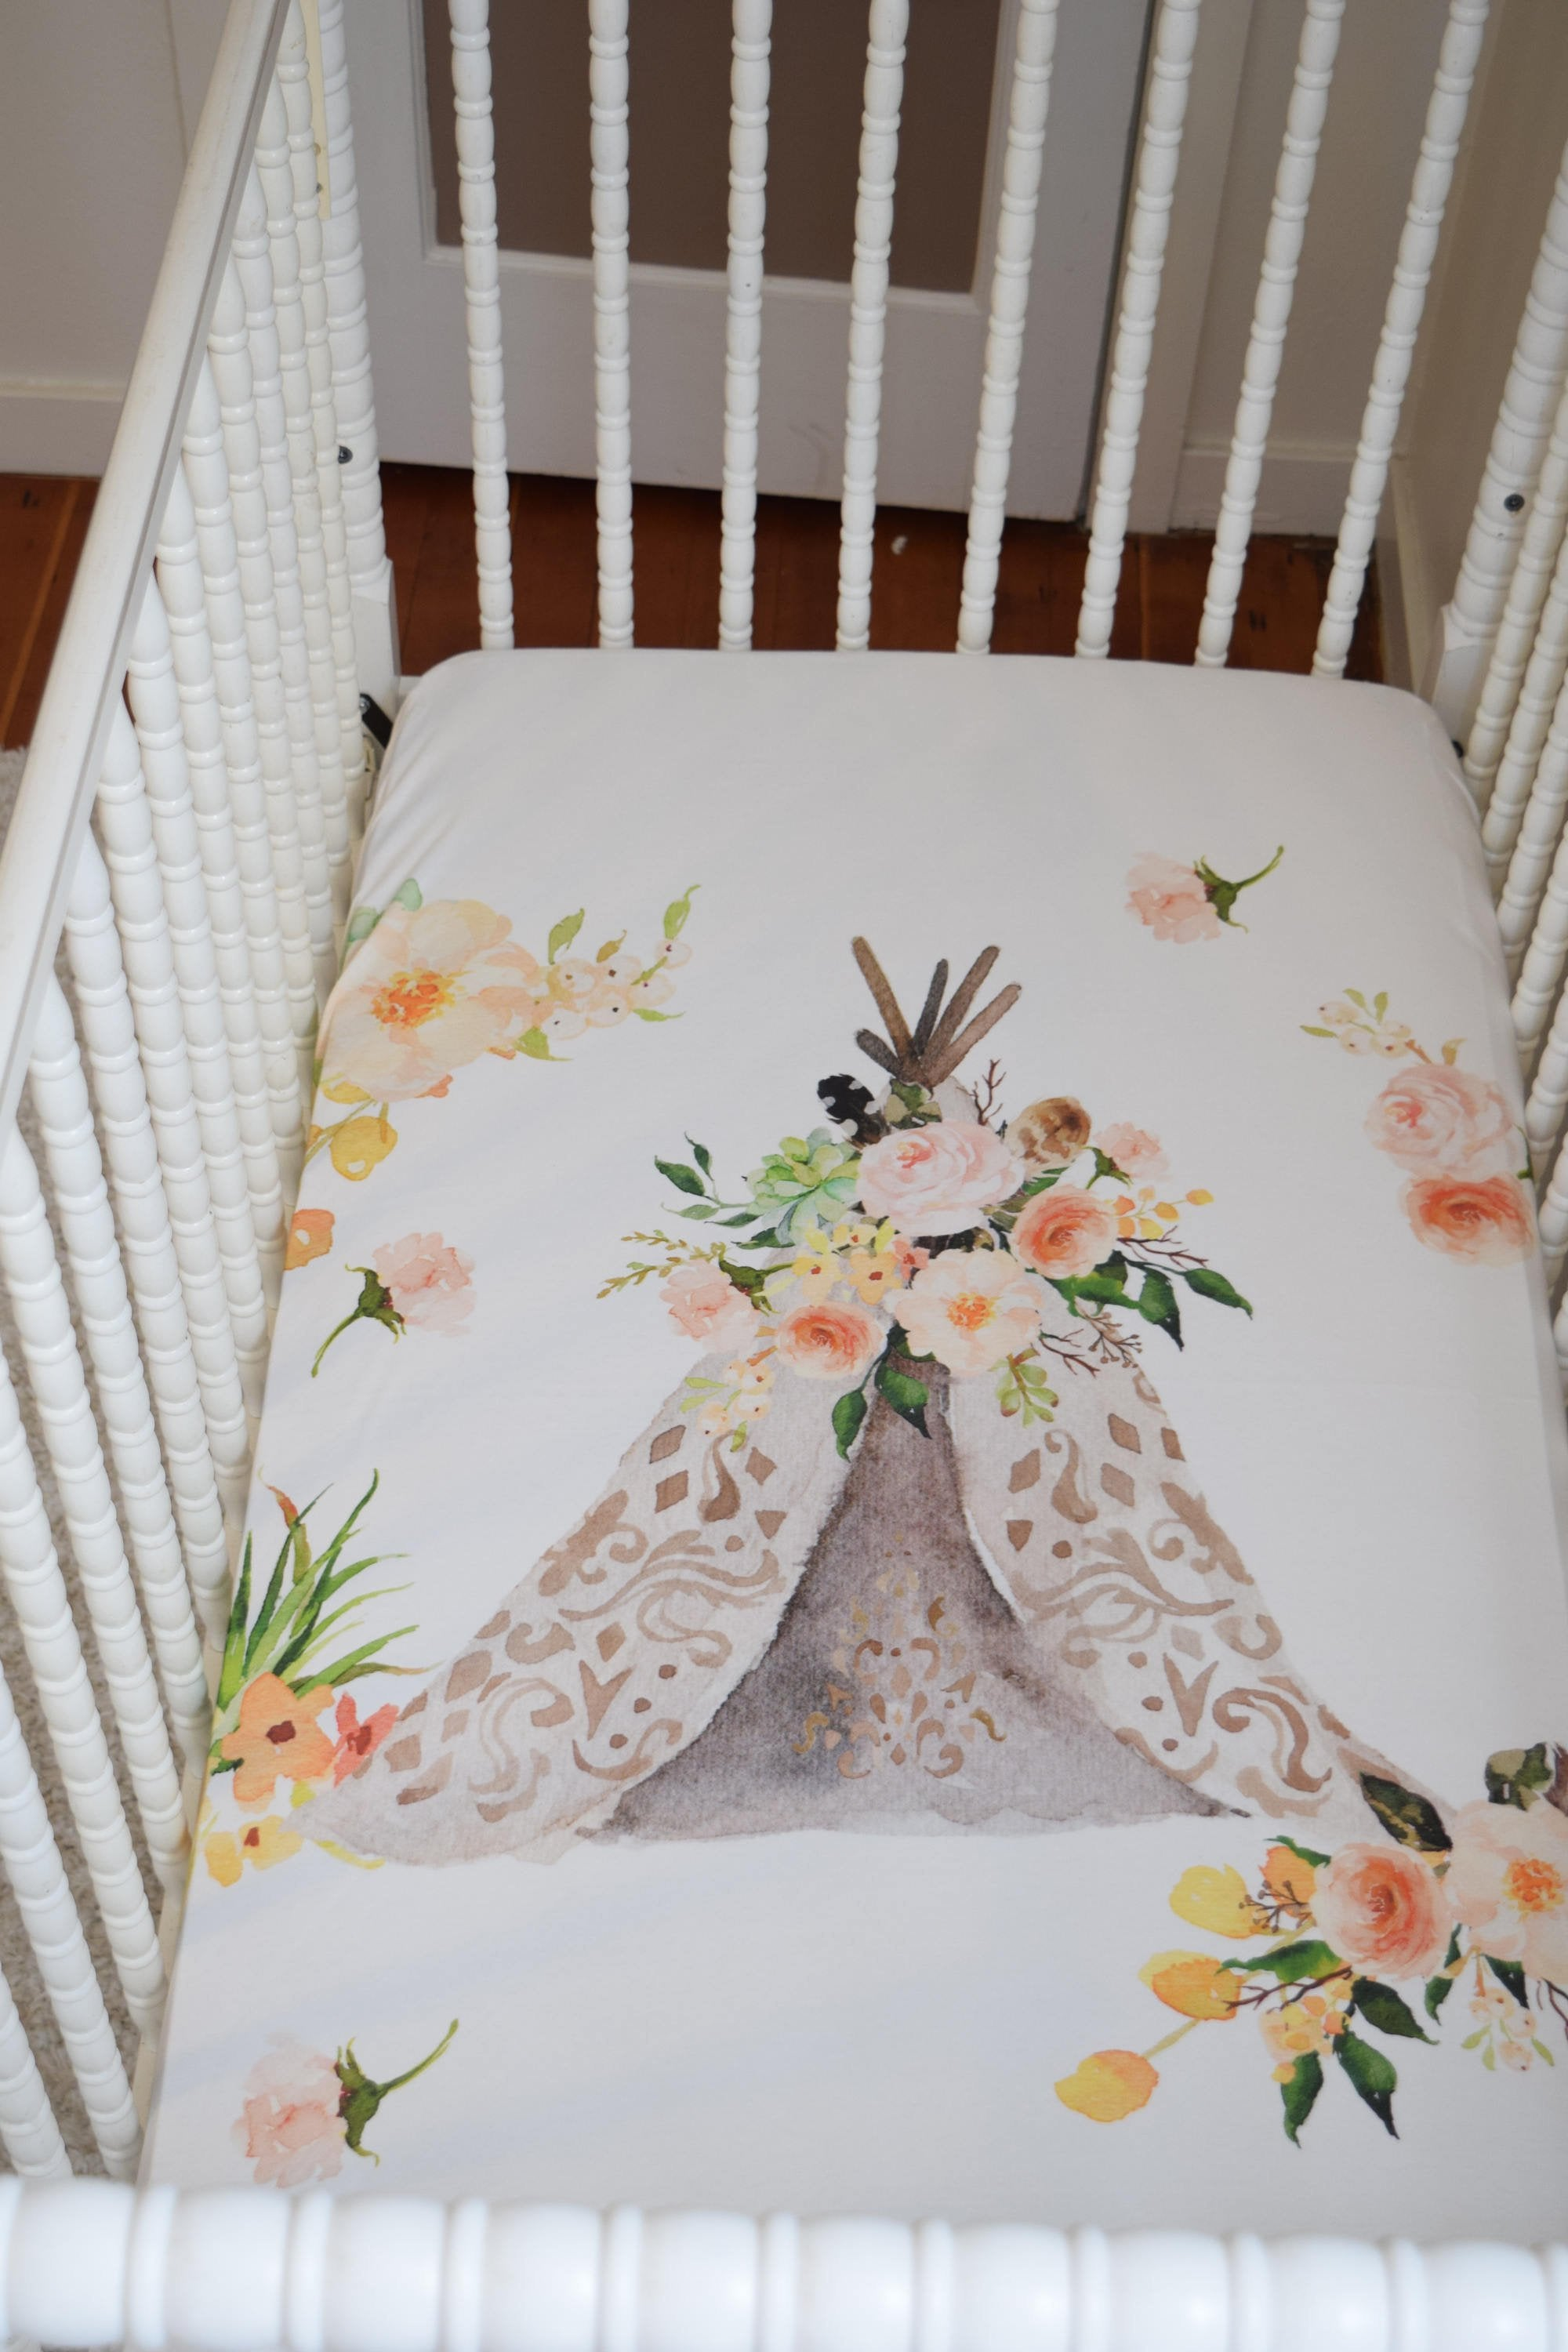 Girls Baby Bedding - Boho Floral Teepee Crib Sheet - Orange Blossom Special  @orangeblossomspecial805